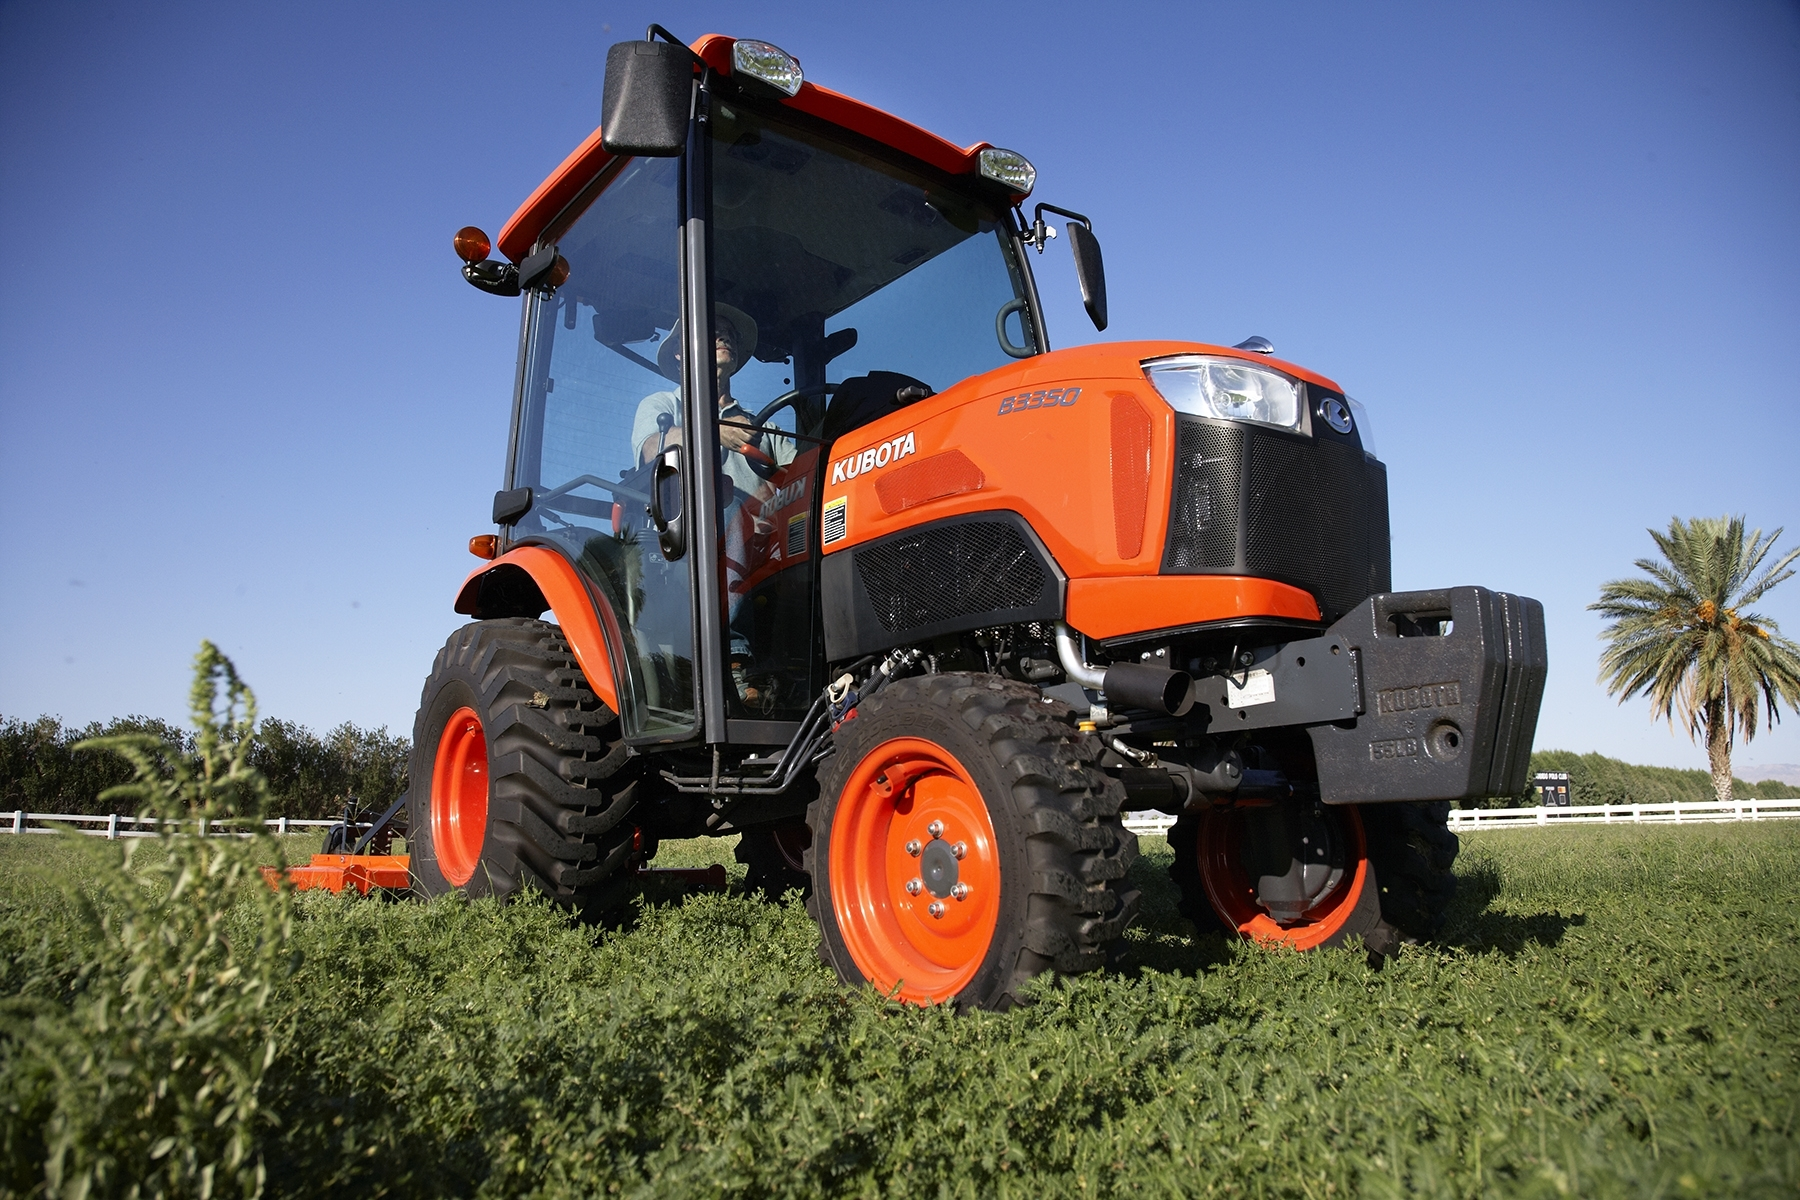 kubota unveils new b50 series tractors with factory integrated cabs ferrari electrical wiring diagram electrical wiring diagram kubota b2650 [ 1800 x 1200 Pixel ]